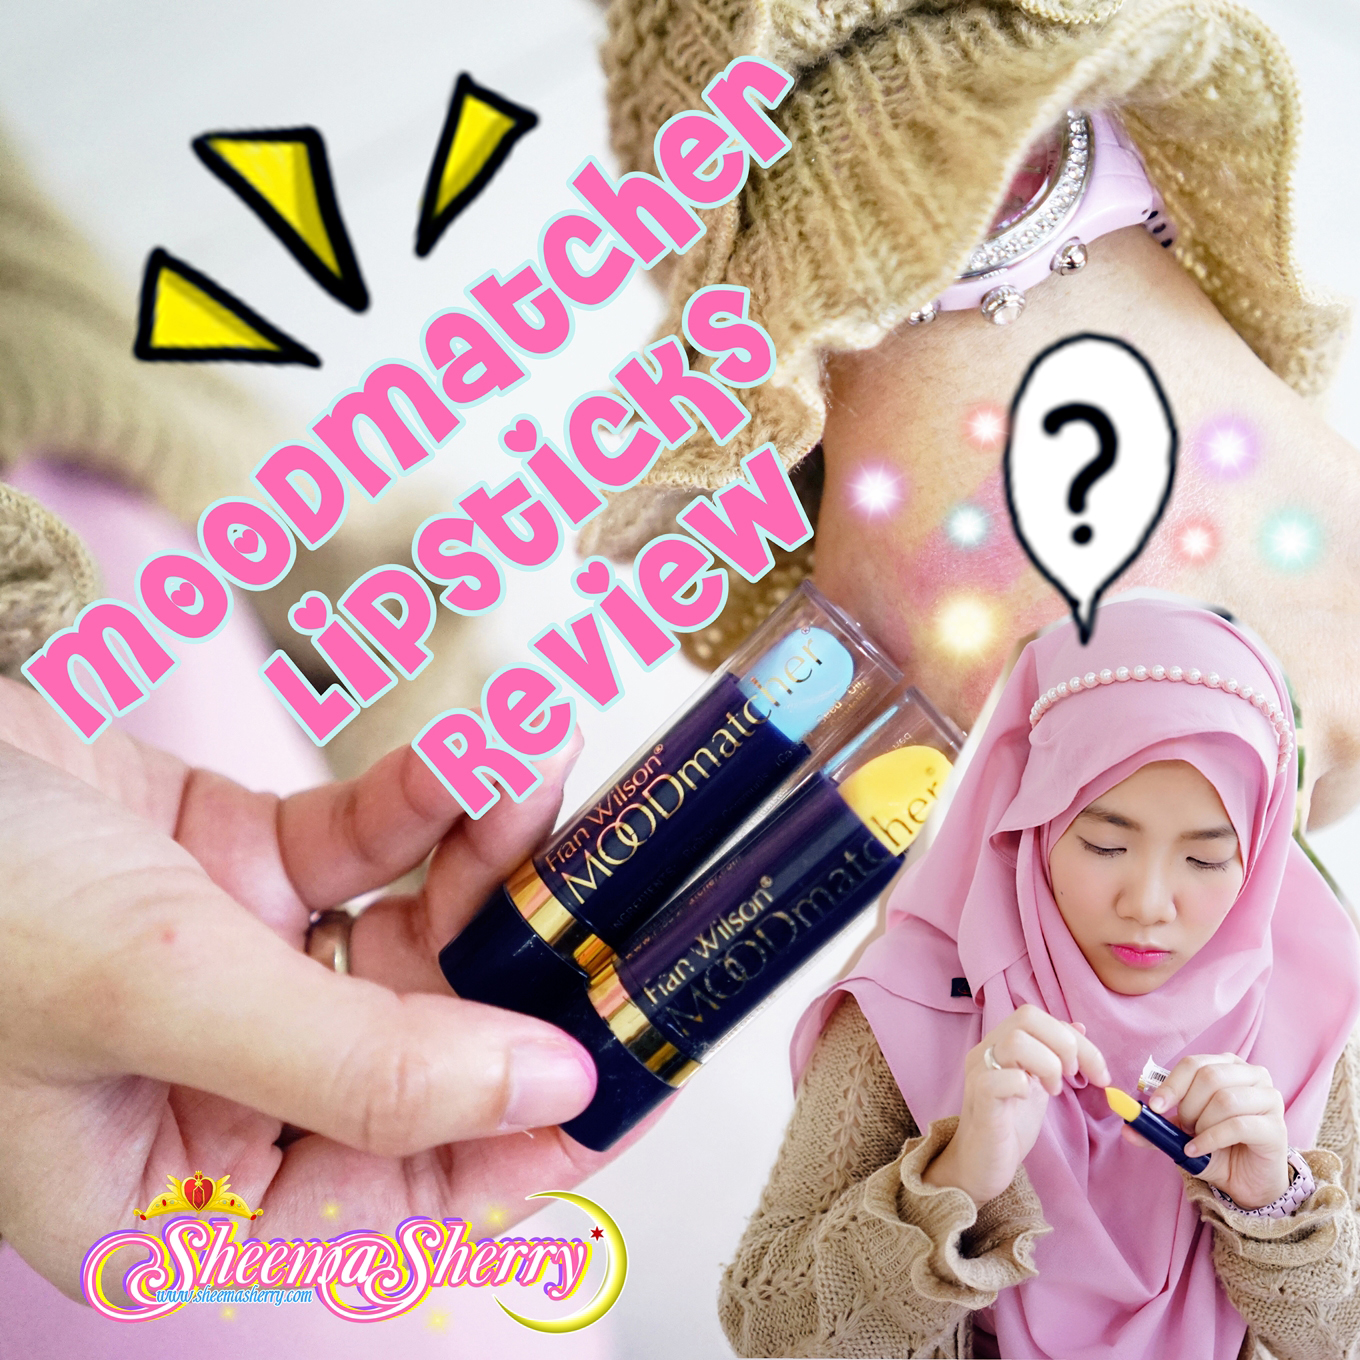 [REVIEW] Fran Wilson MOODmatcher® Lipsticks ??? My NEW MOOD BOOSTERS! USA America Kawaii Hijabi Sheema Sherry Muslim Islam Beauty Japan Makeup